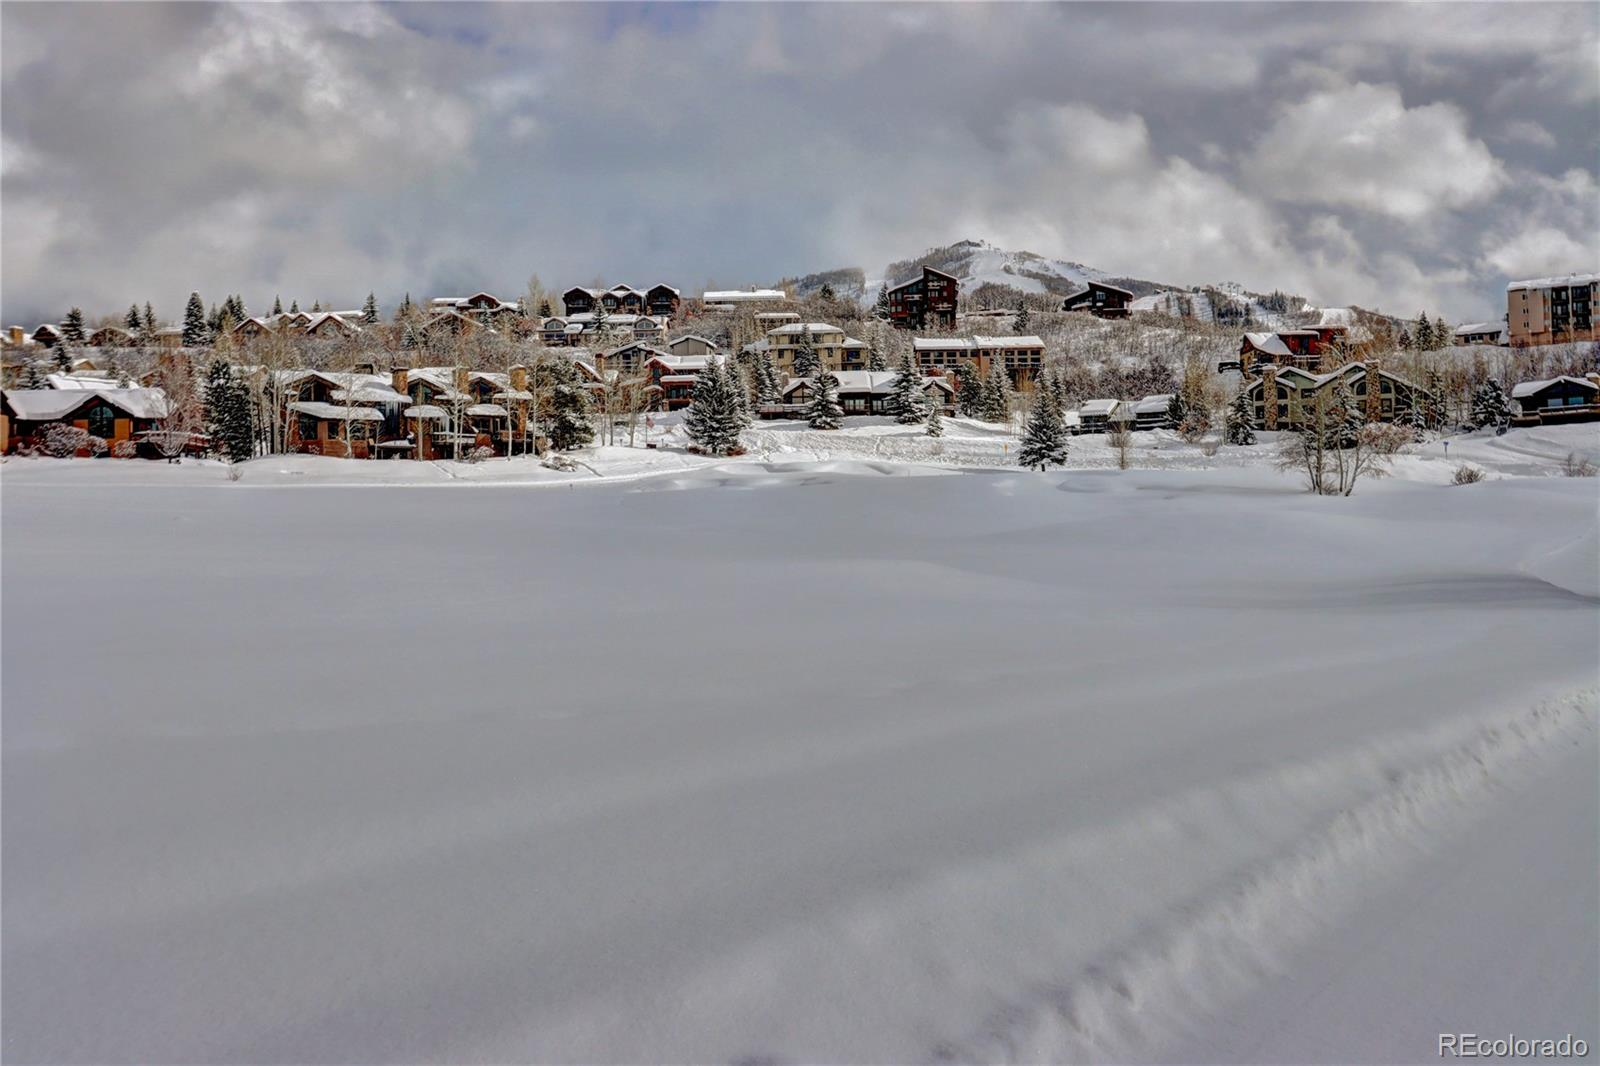 MLS# 4520884 - 31 - 1646 Cornice Court, Steamboat Springs, CO 80487